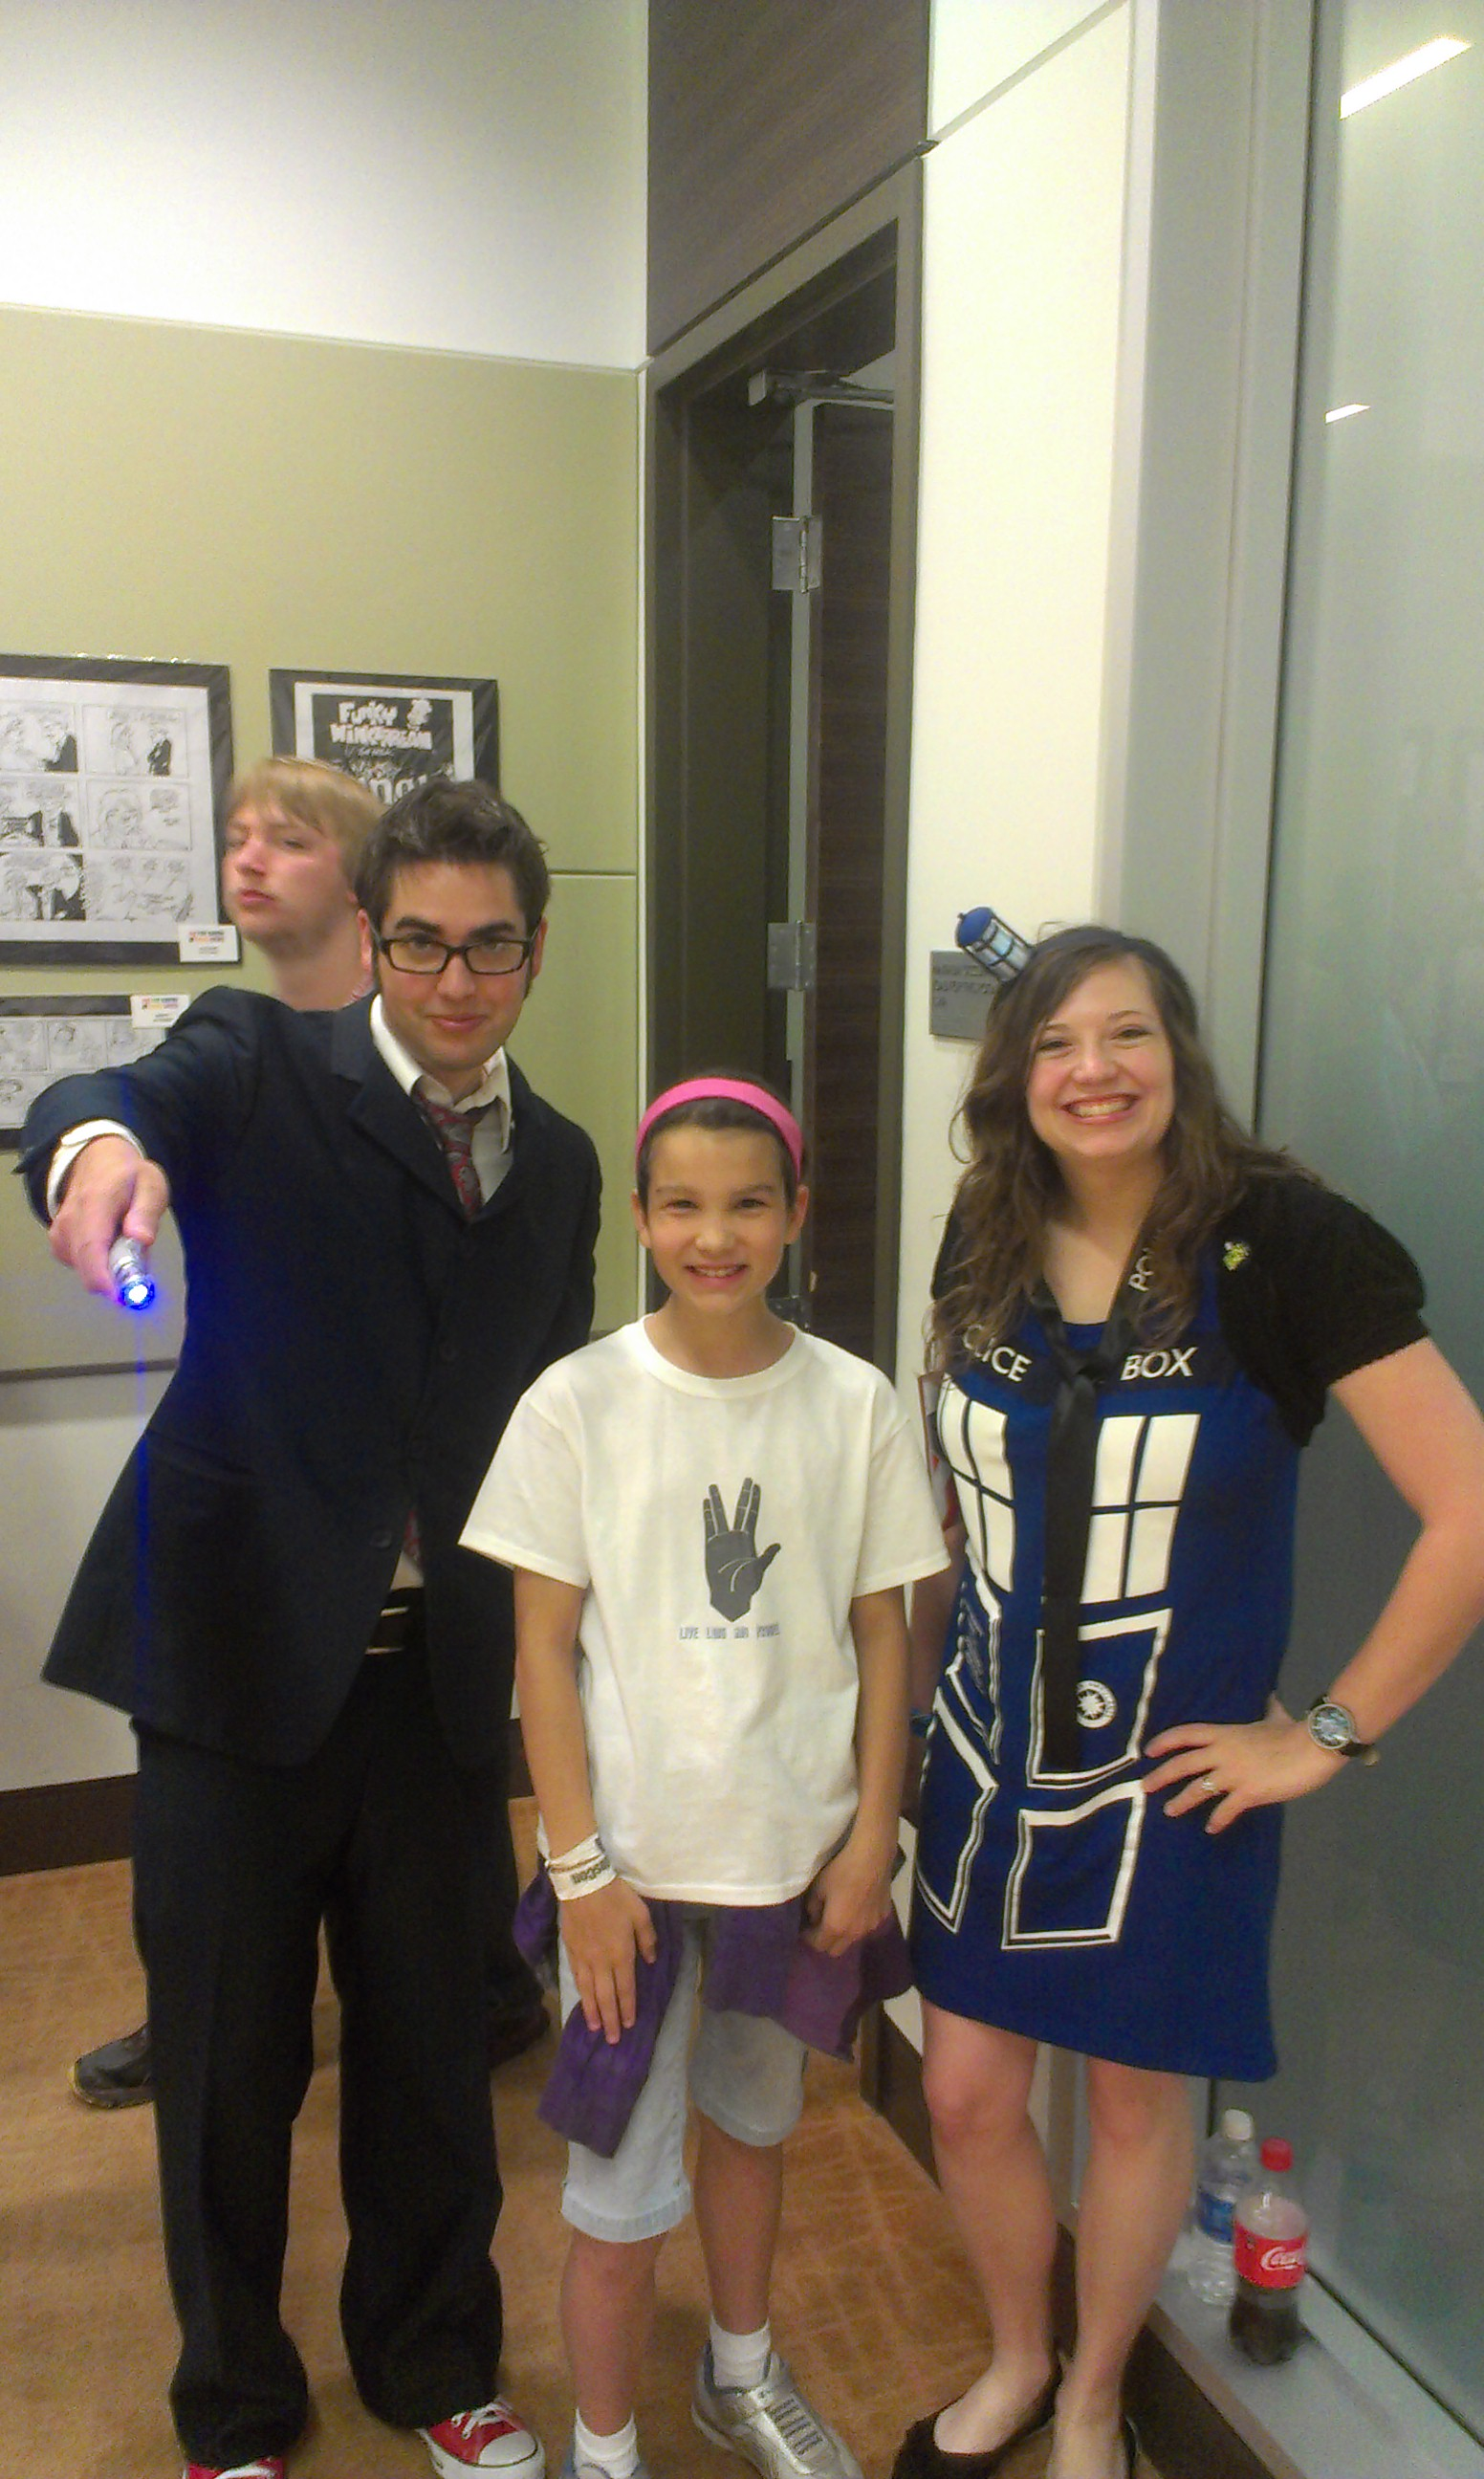 A great Doctor and TARDIS couple. her hair piece lights up too!